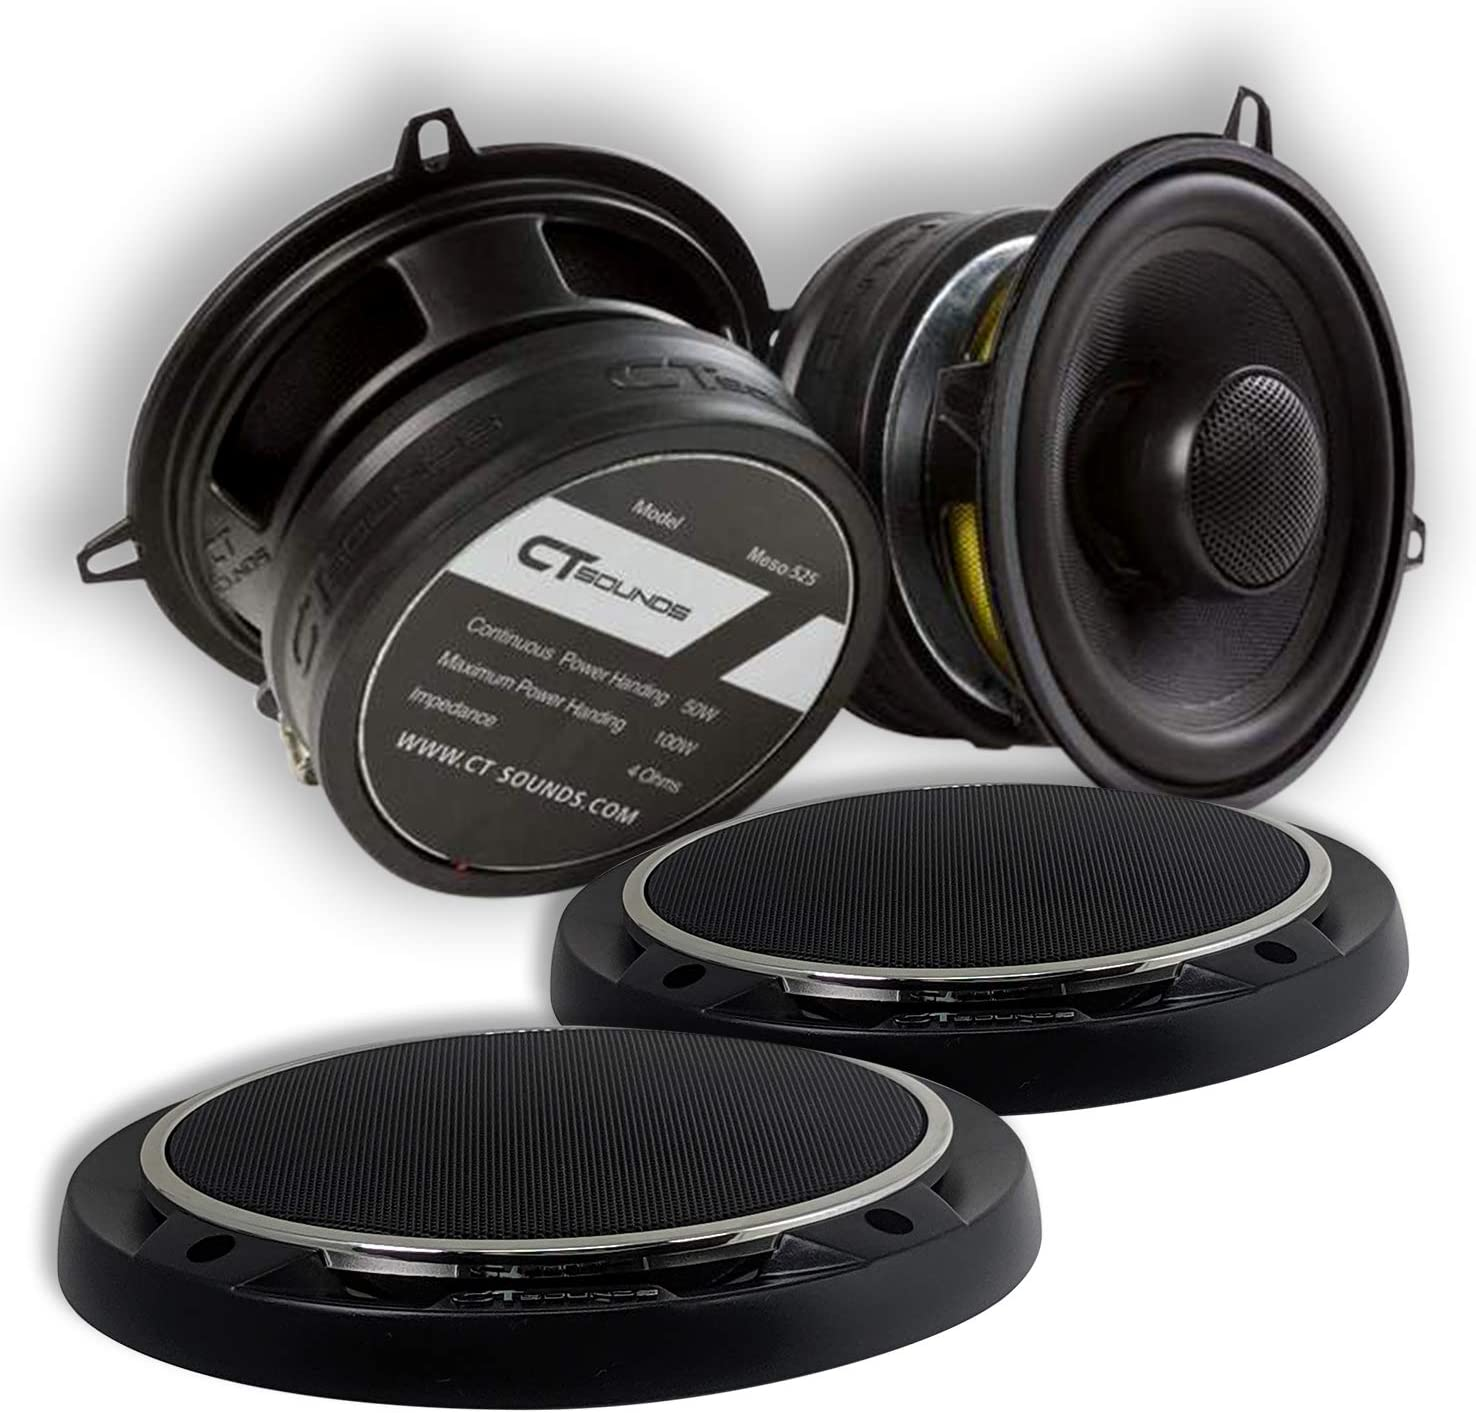 """CT Sounds 5.25 Inch Car Audio Coaxial Speakers Set - Pair, Full Range , Easy Mounting, 4 ohm 1.4"""" Voice Coil, 30Watts Rms/ 60Watts Peak Power, 5.25"""" Carbon Fiber Cone - Meso 5.25"""